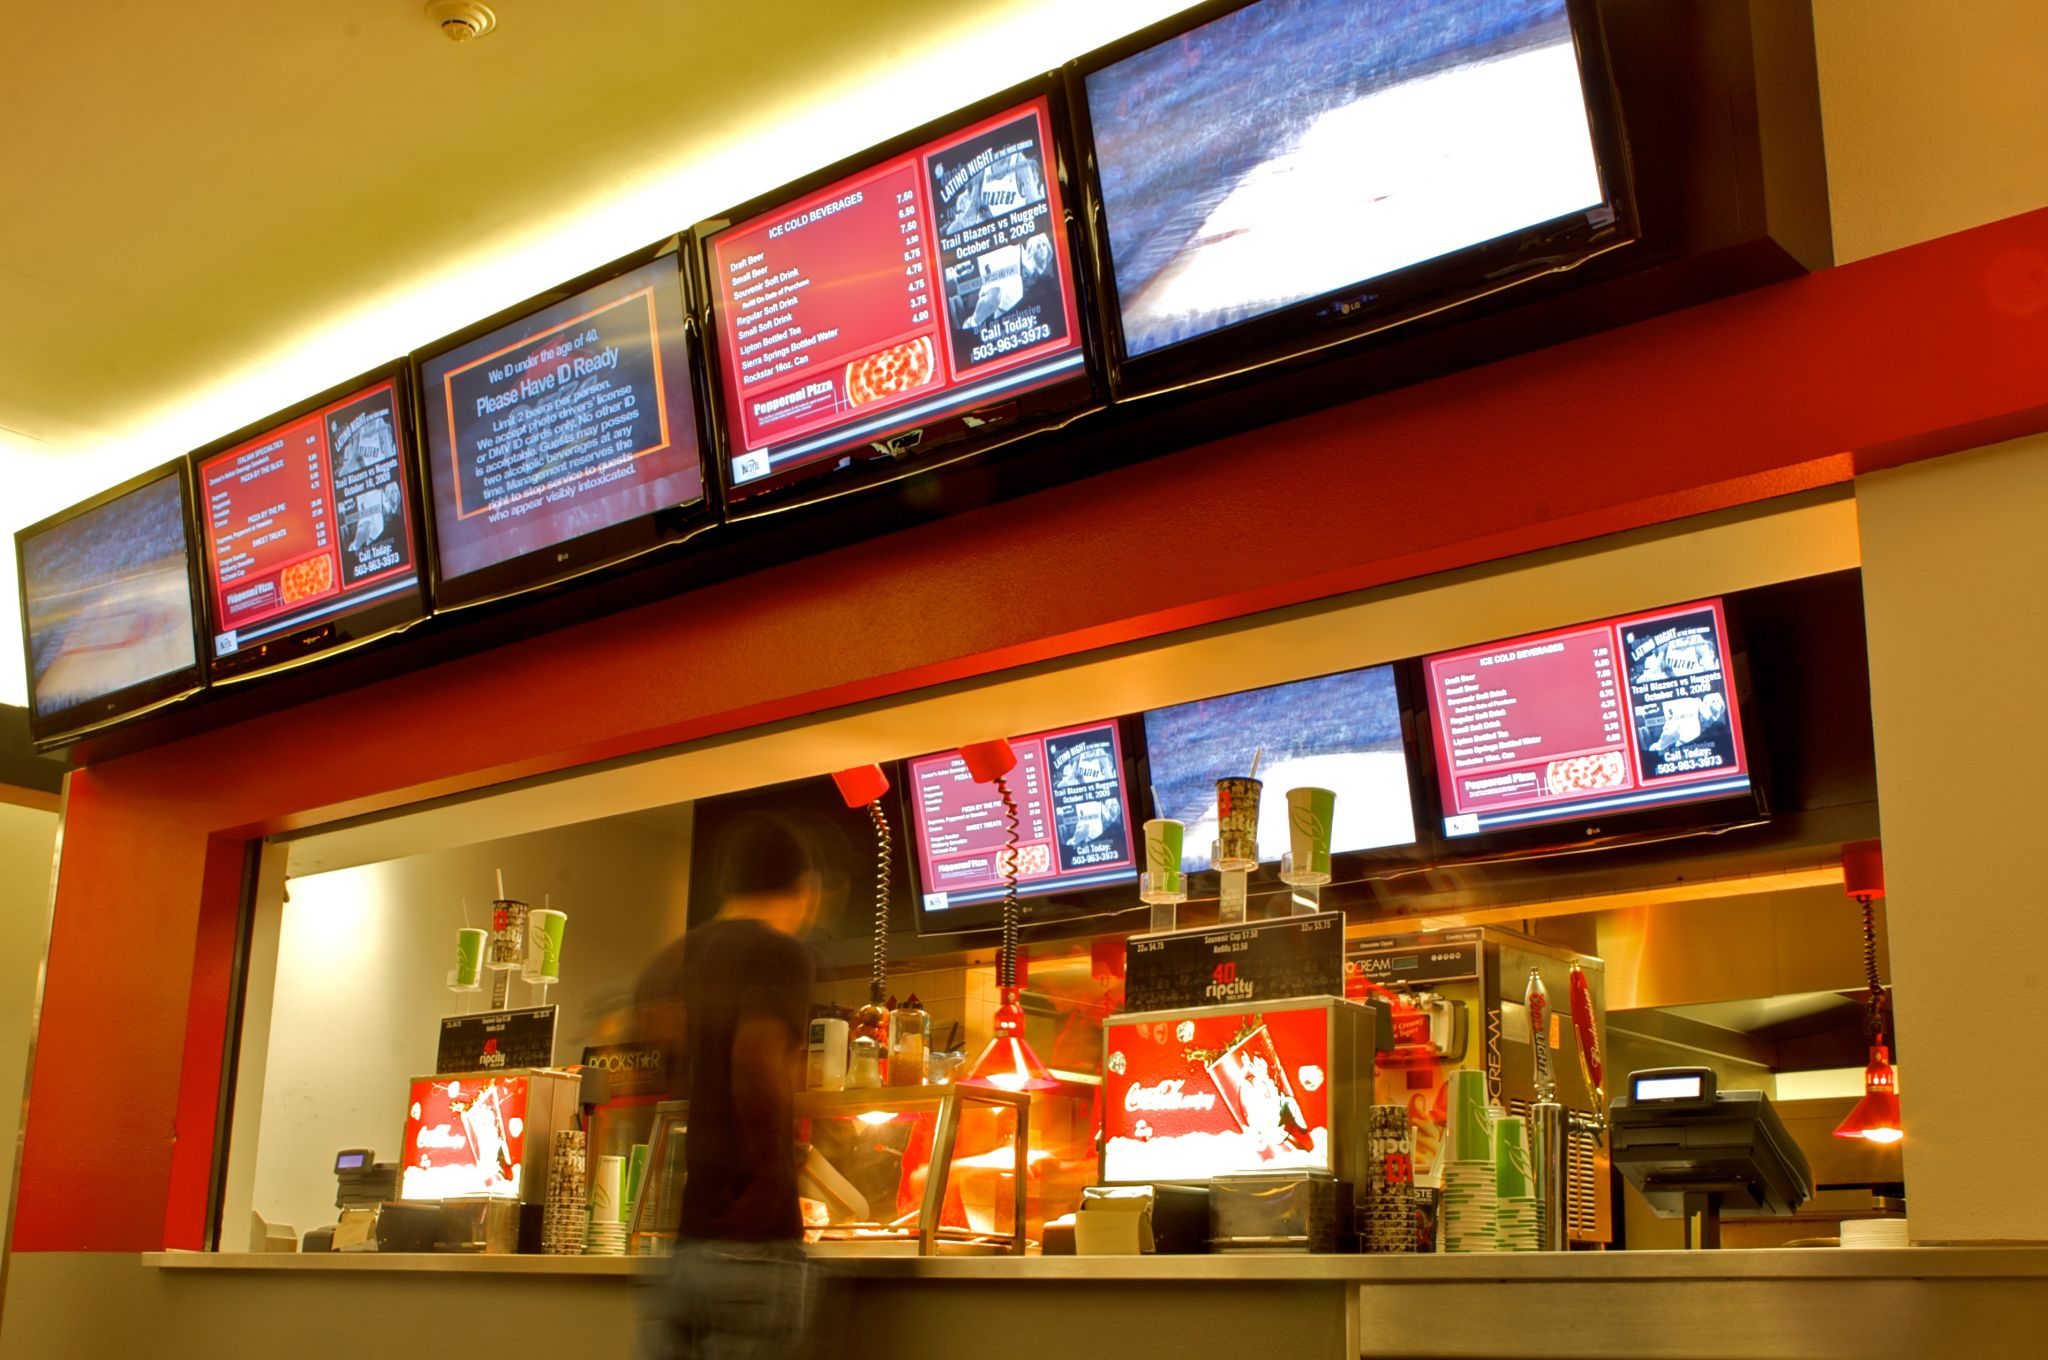 Portland Trail Blazers Arena >> Digital Signage: Doing more with menu boards - Sign Media